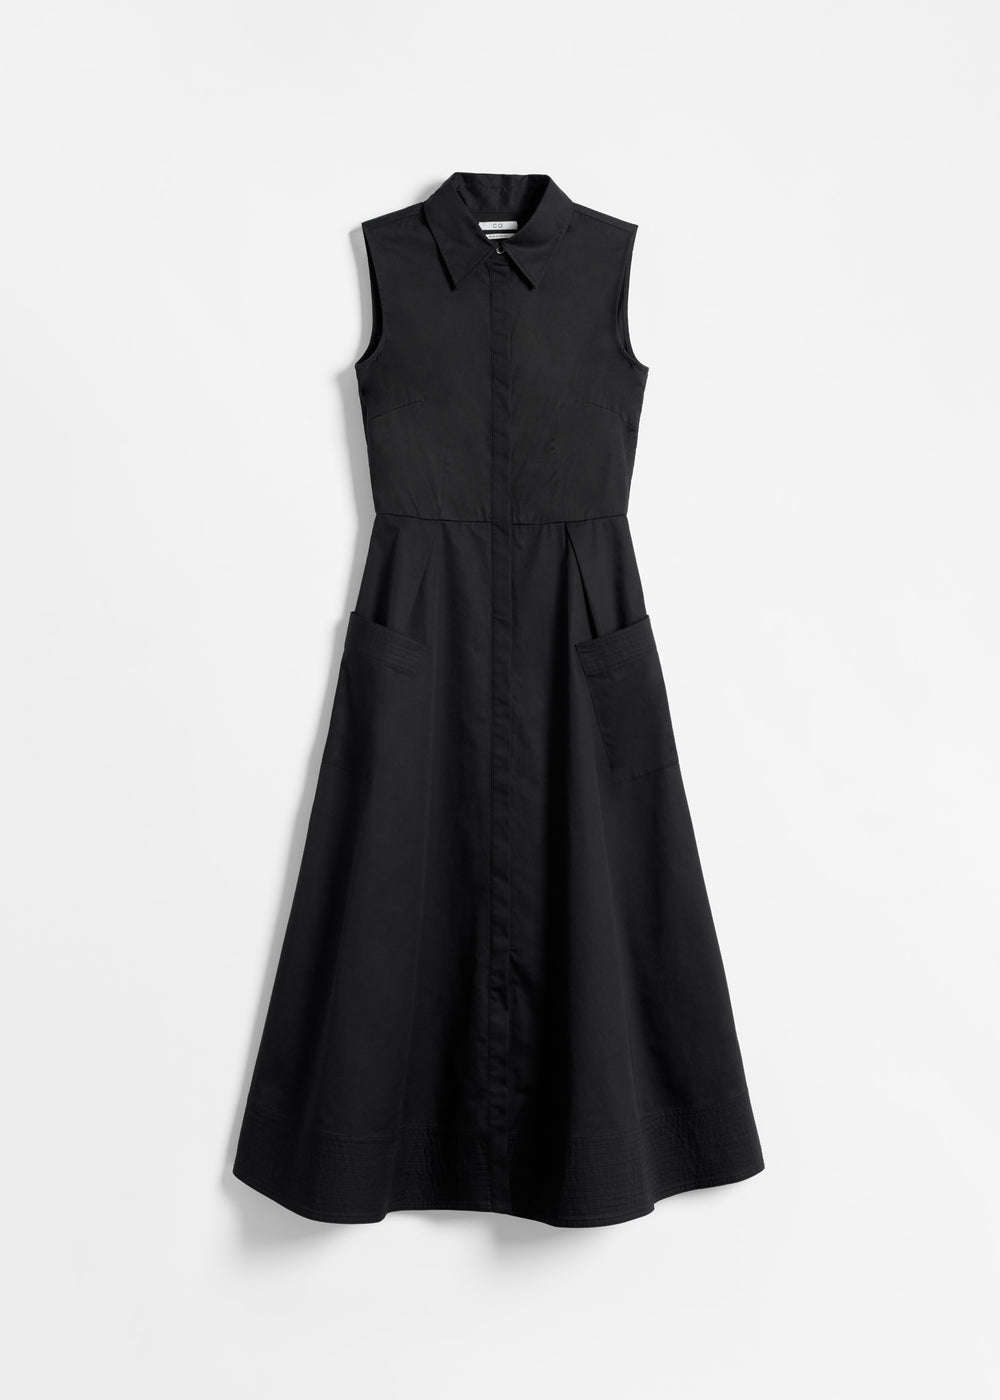 Sleeveless Button Down Dress in Cotton Poplin - Navy in Black by Co Collections